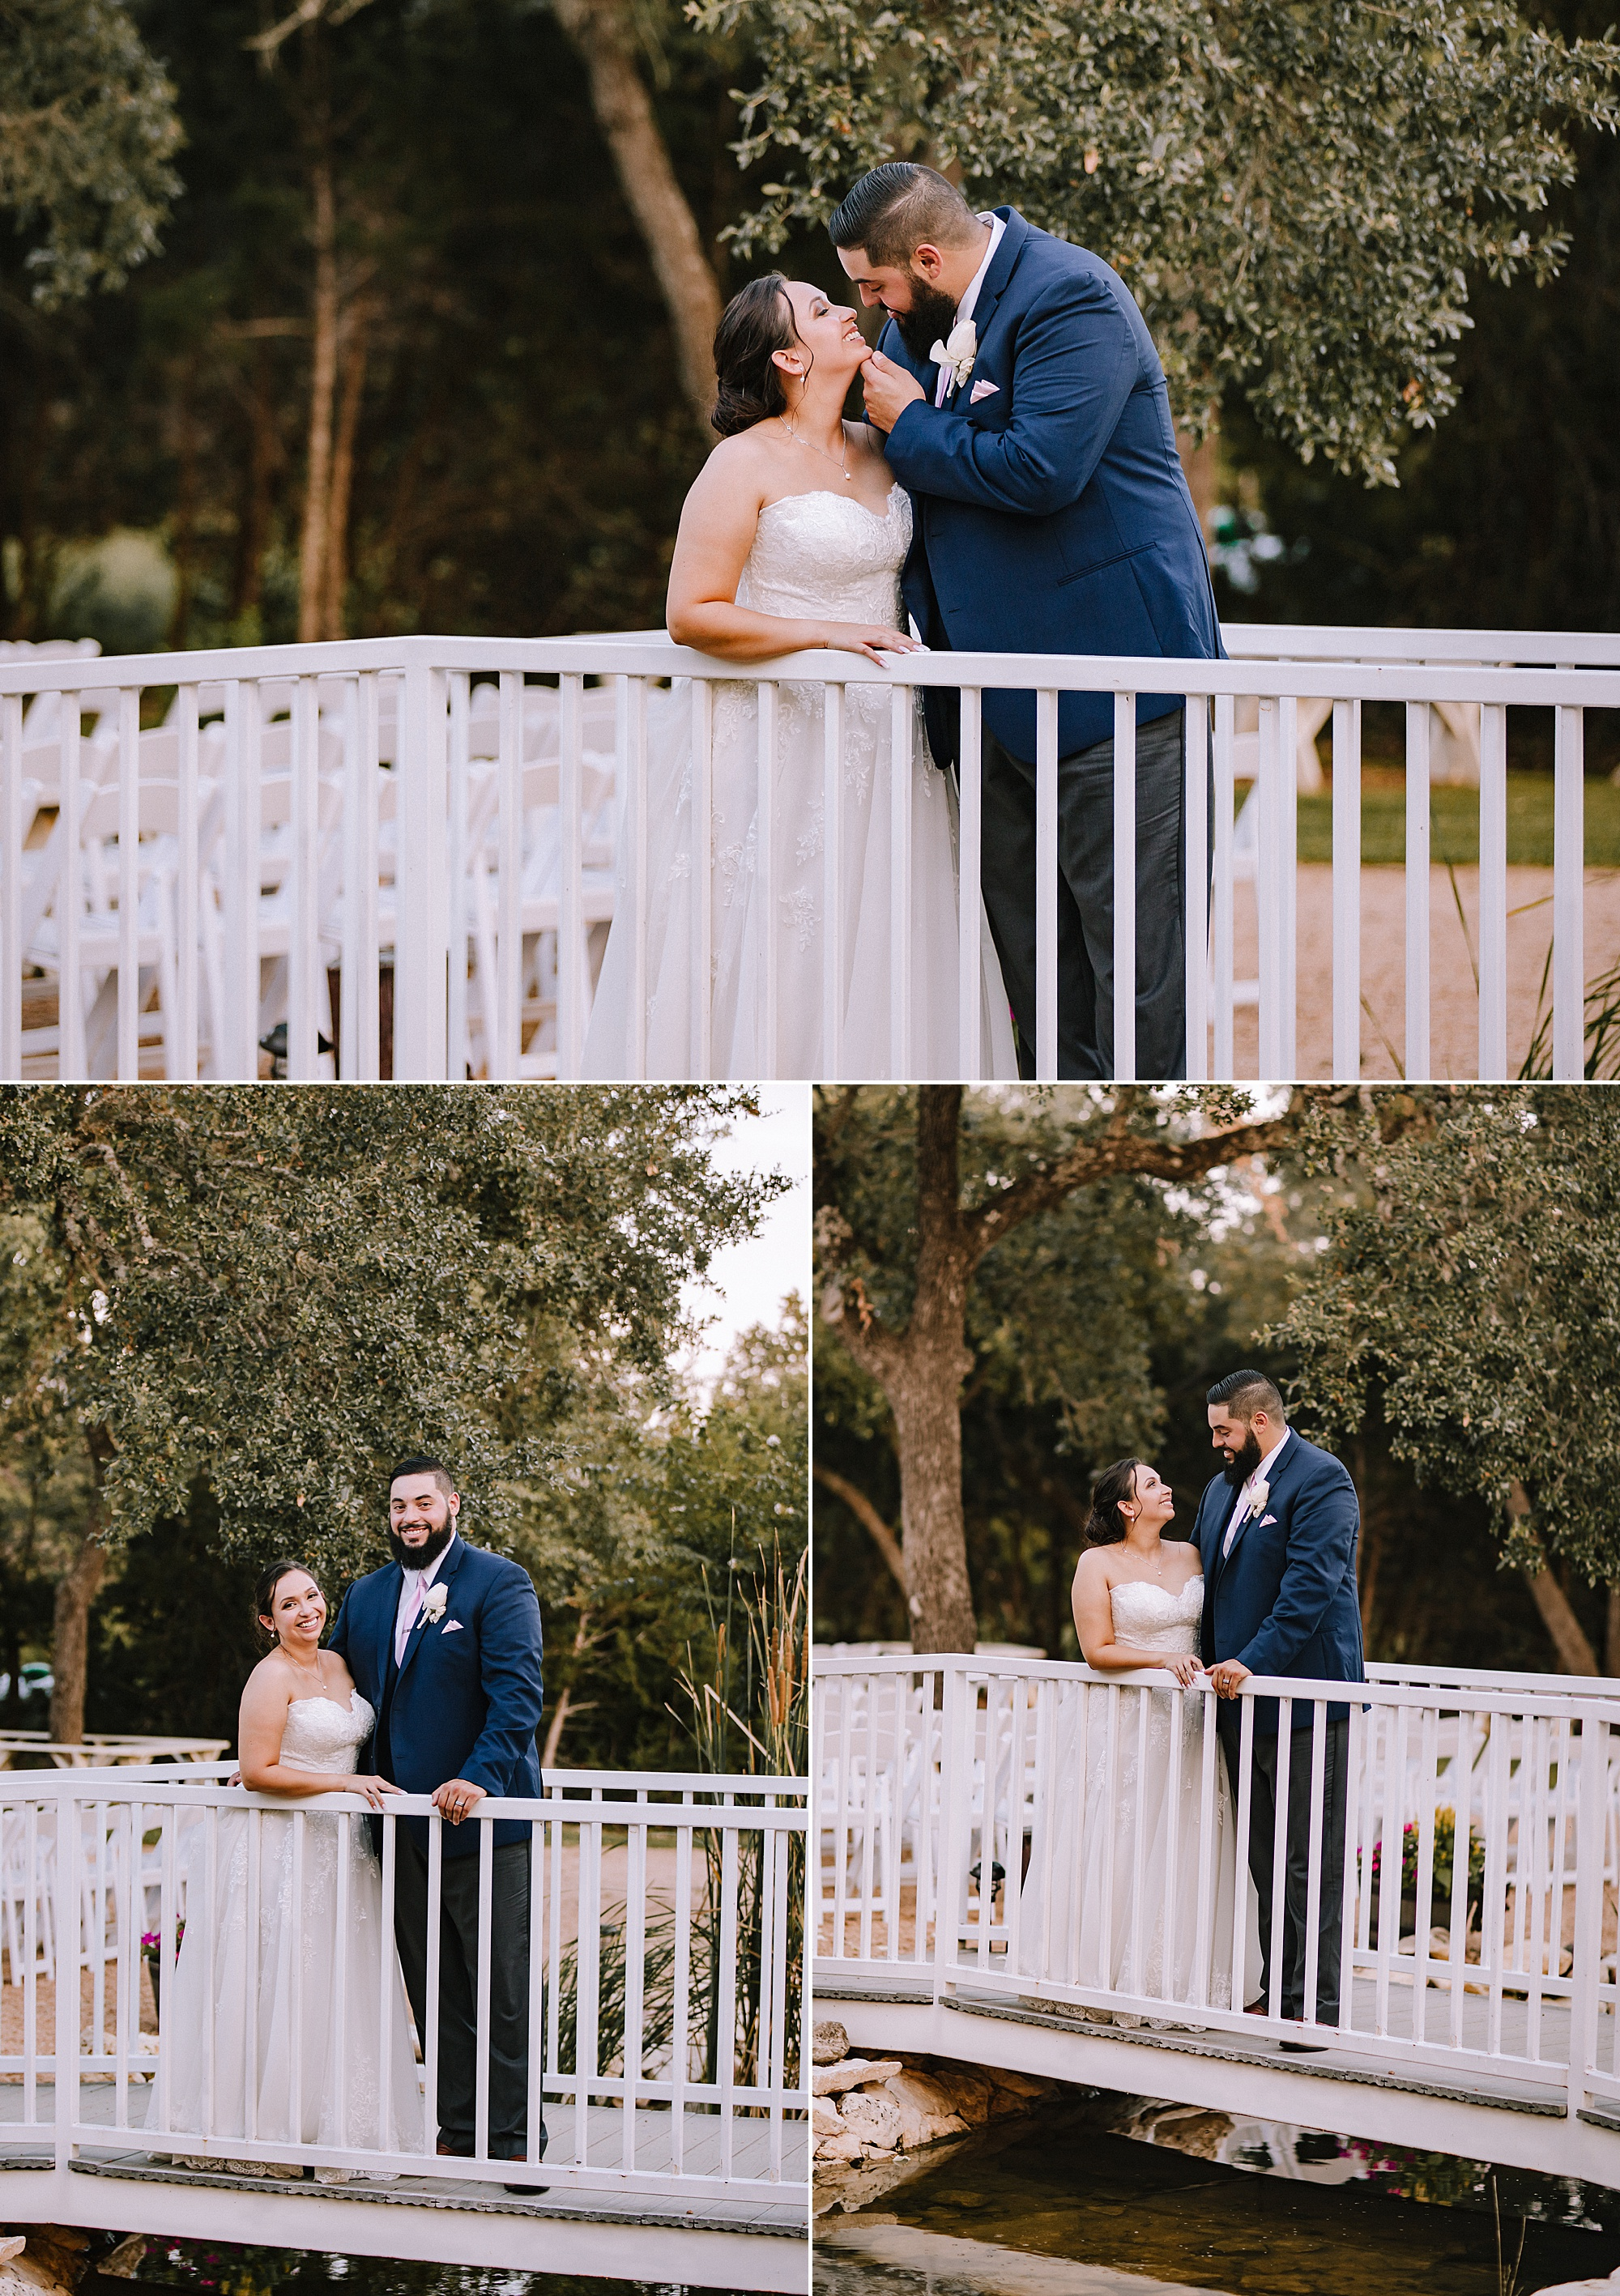 Wedding-Photographer-Bulverde-Texas-Western-Sky-Event-Venue-Carly-Barton-Photography_0055.jpg